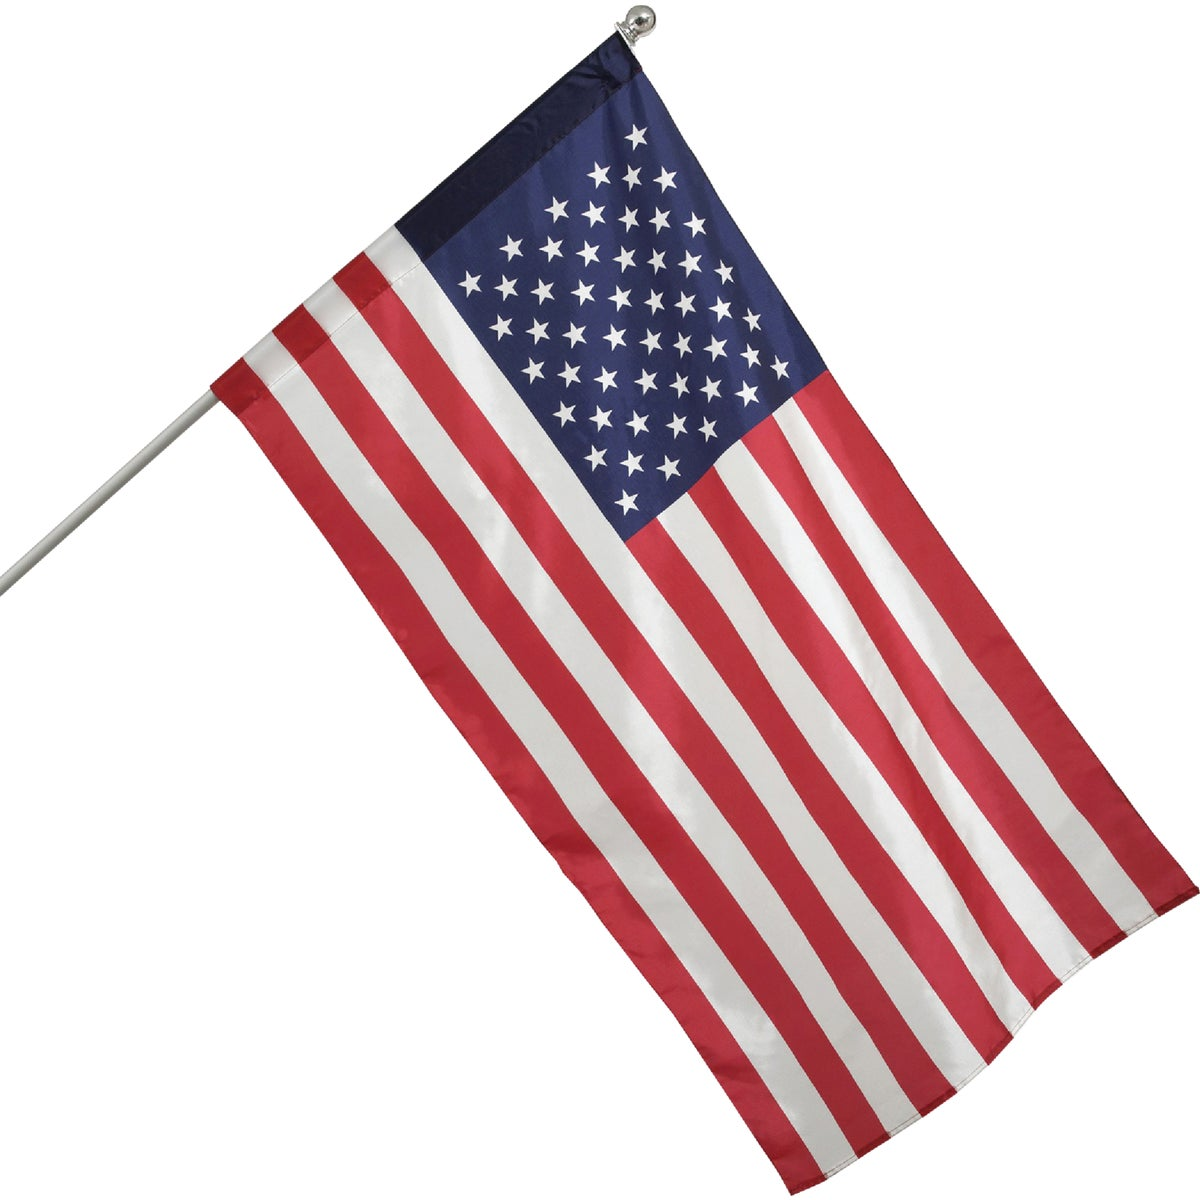 ALUM NYLON FLAGPOLE KIT - AA99090 by Valley Forge Flag